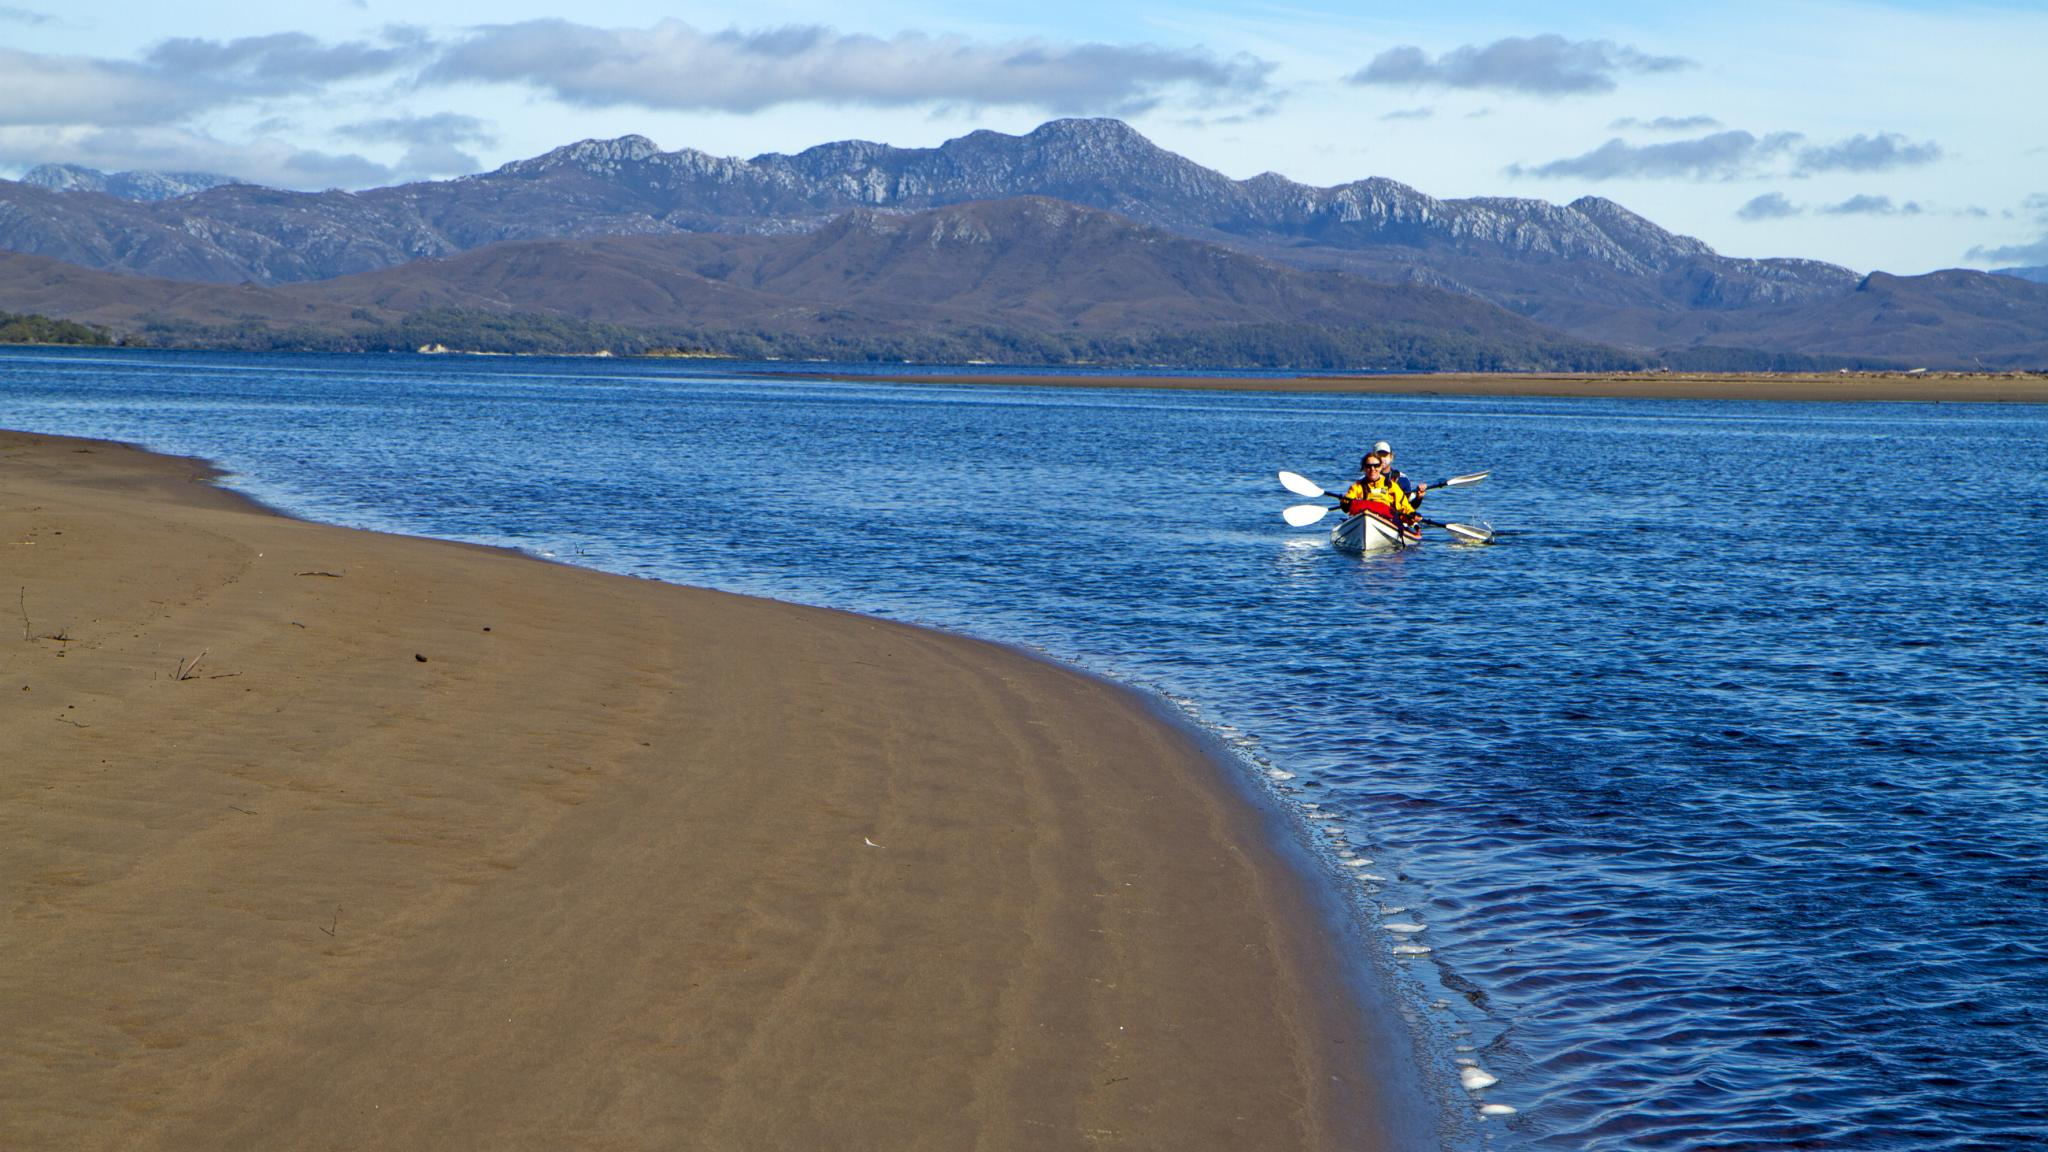 Roaring 40s Kayaking - Kayaking adventure tour on Port Davey, Southwest Tasmania